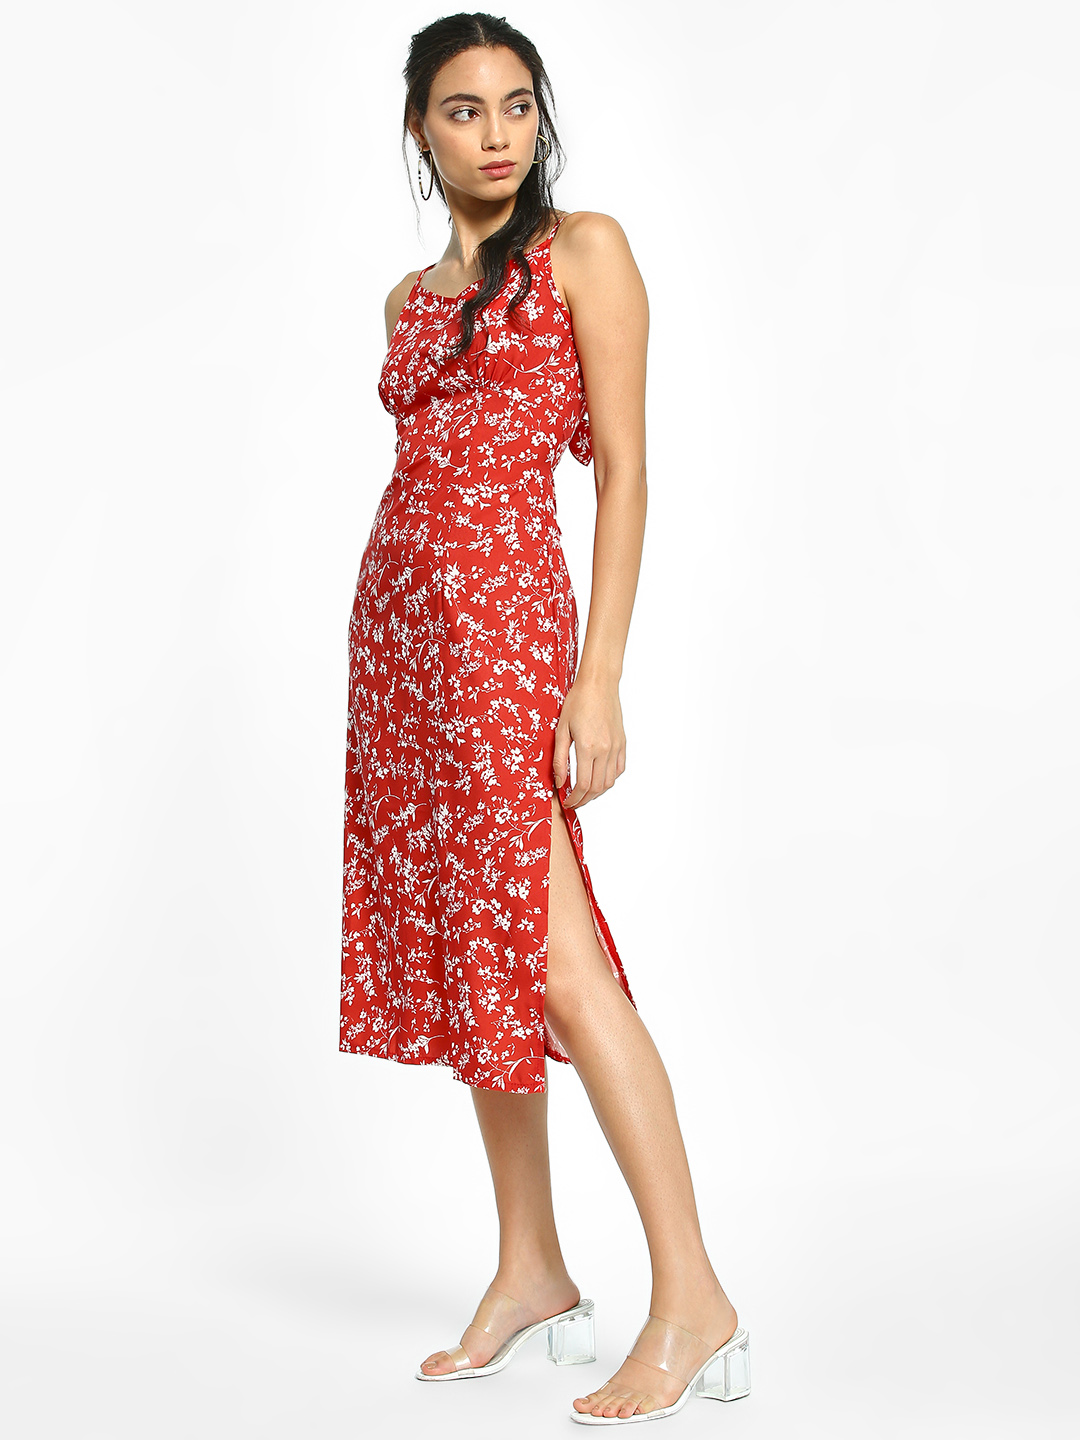 EmmaCloth Red Floral Print Cut-Out Back Midi Dress 1